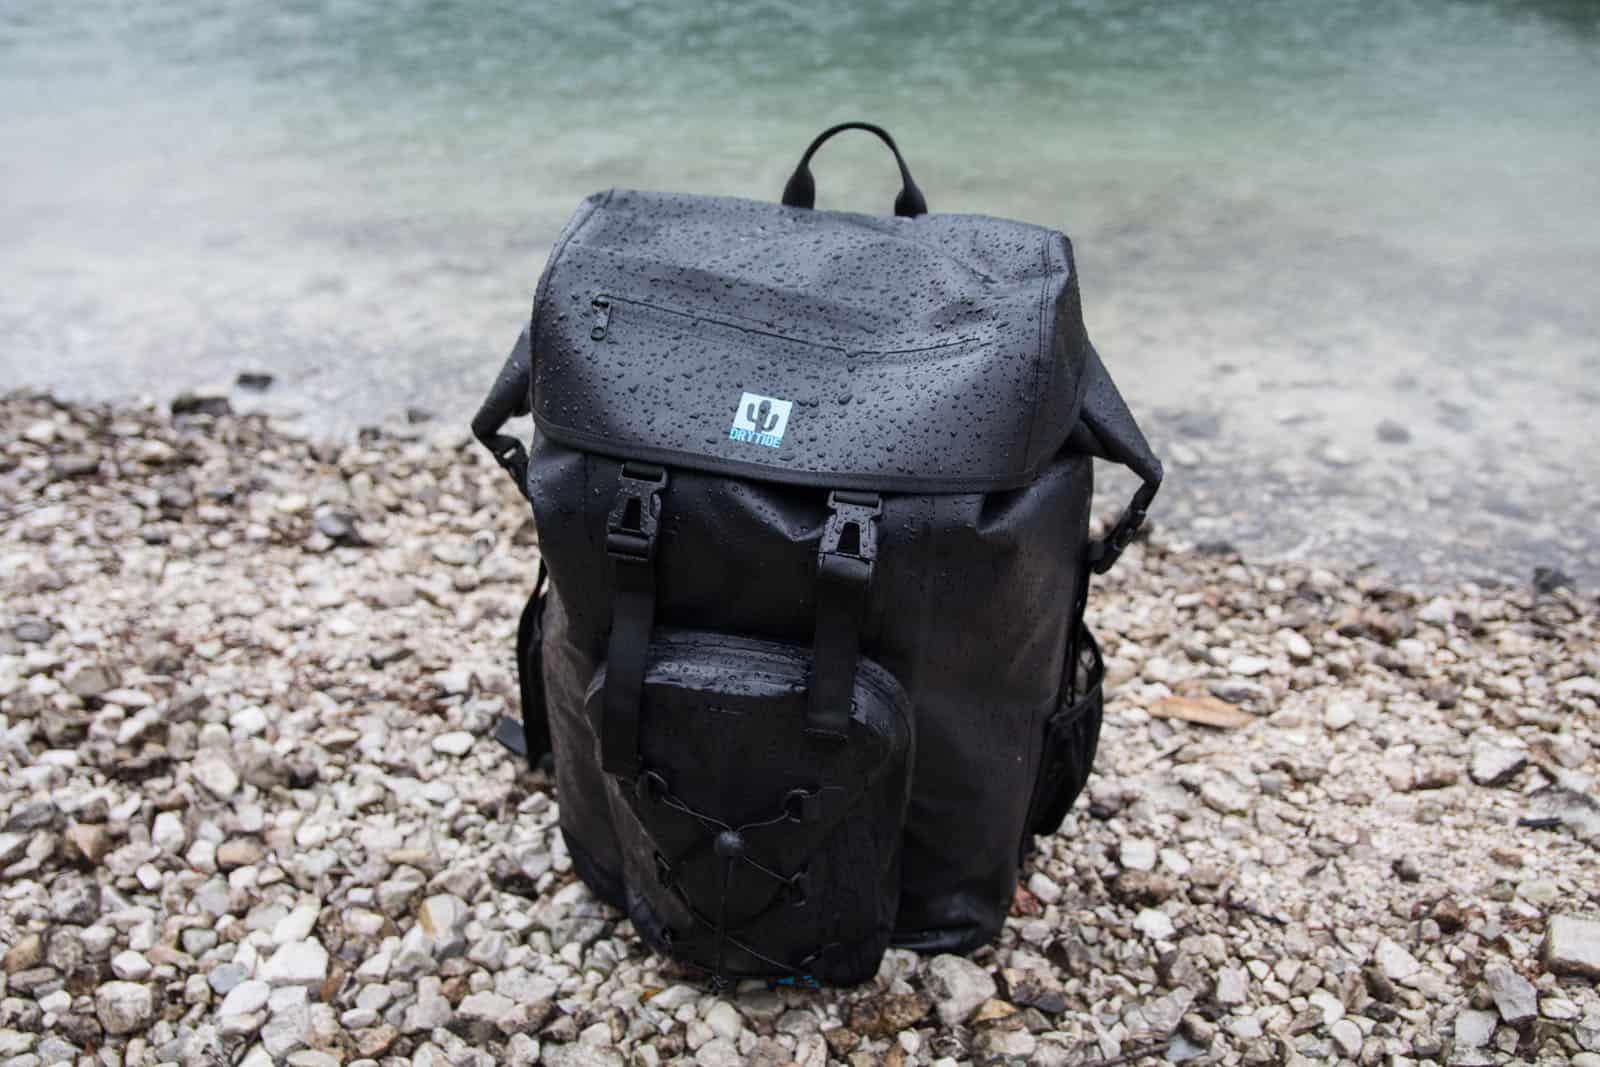 Although a waterproof bag is mainly used in wet conditions there is another place where it really comes in handy - really dry dusty and sandy places. Small sand can be even worse for your electronic gear than water.